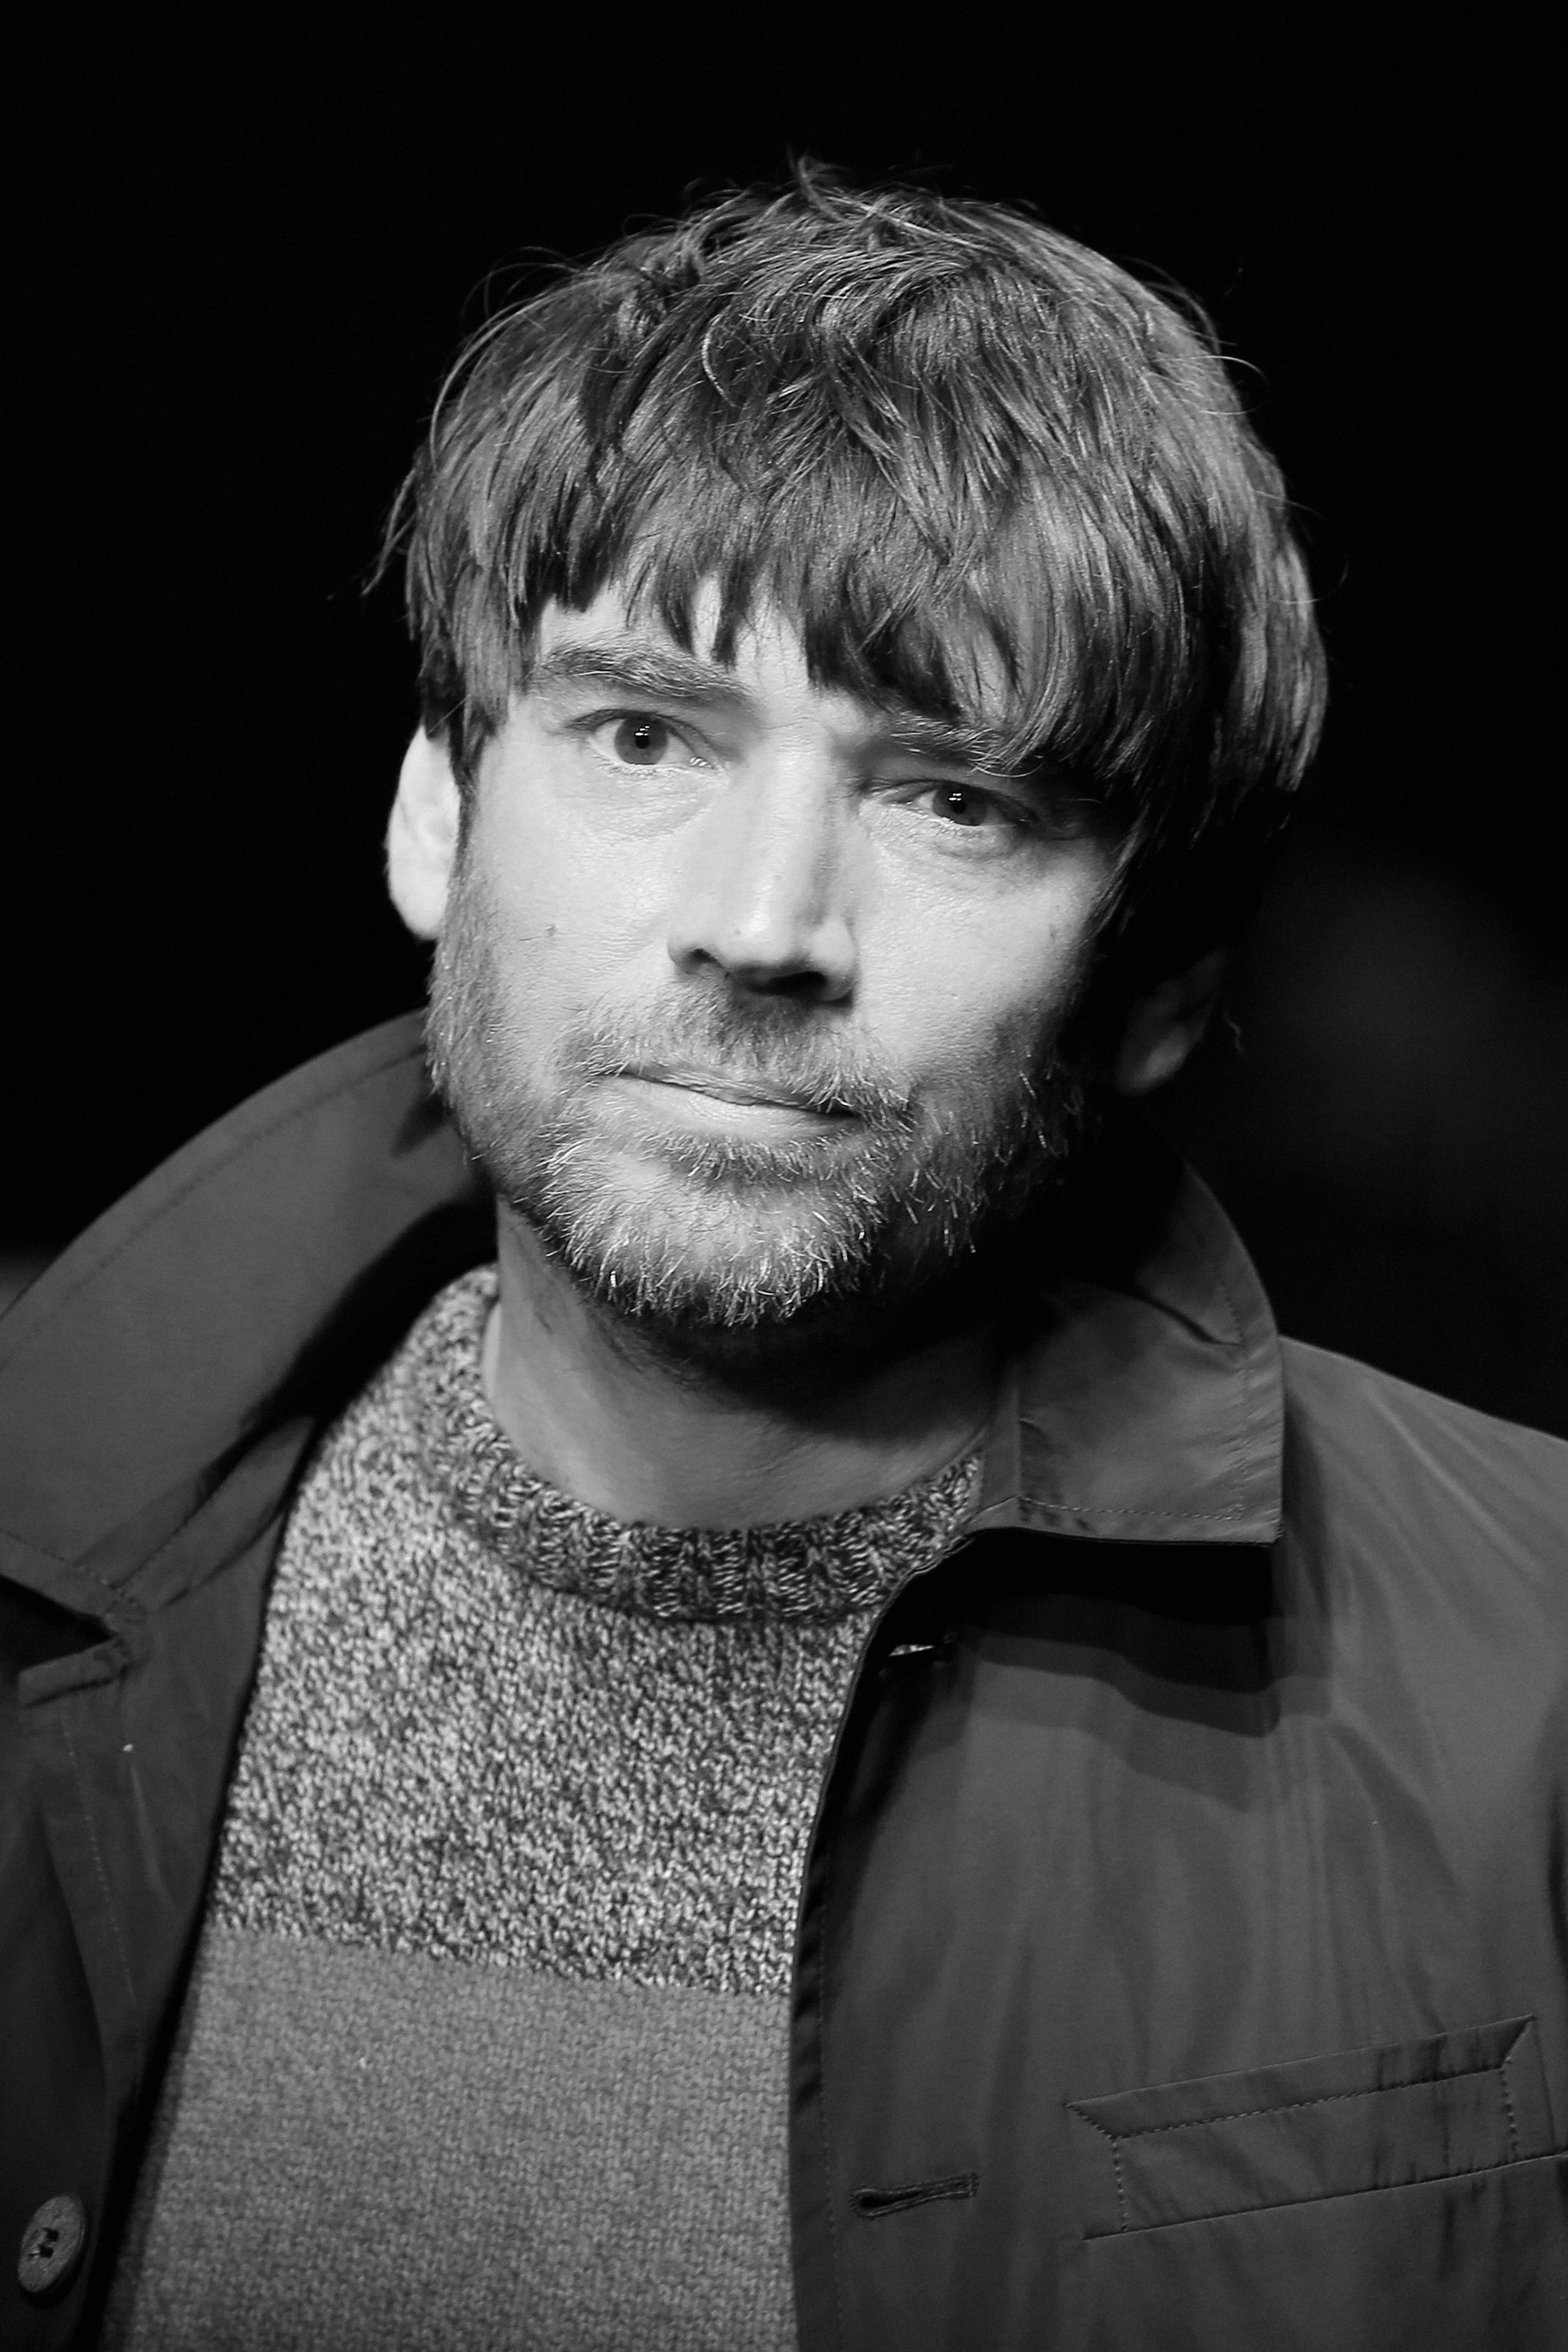 The 49-year old son of father Jason James and mother(?) Alex James in 2018 photo. Alex James earned a  million dollar salary - leaving the net worth at 25 million in 2018